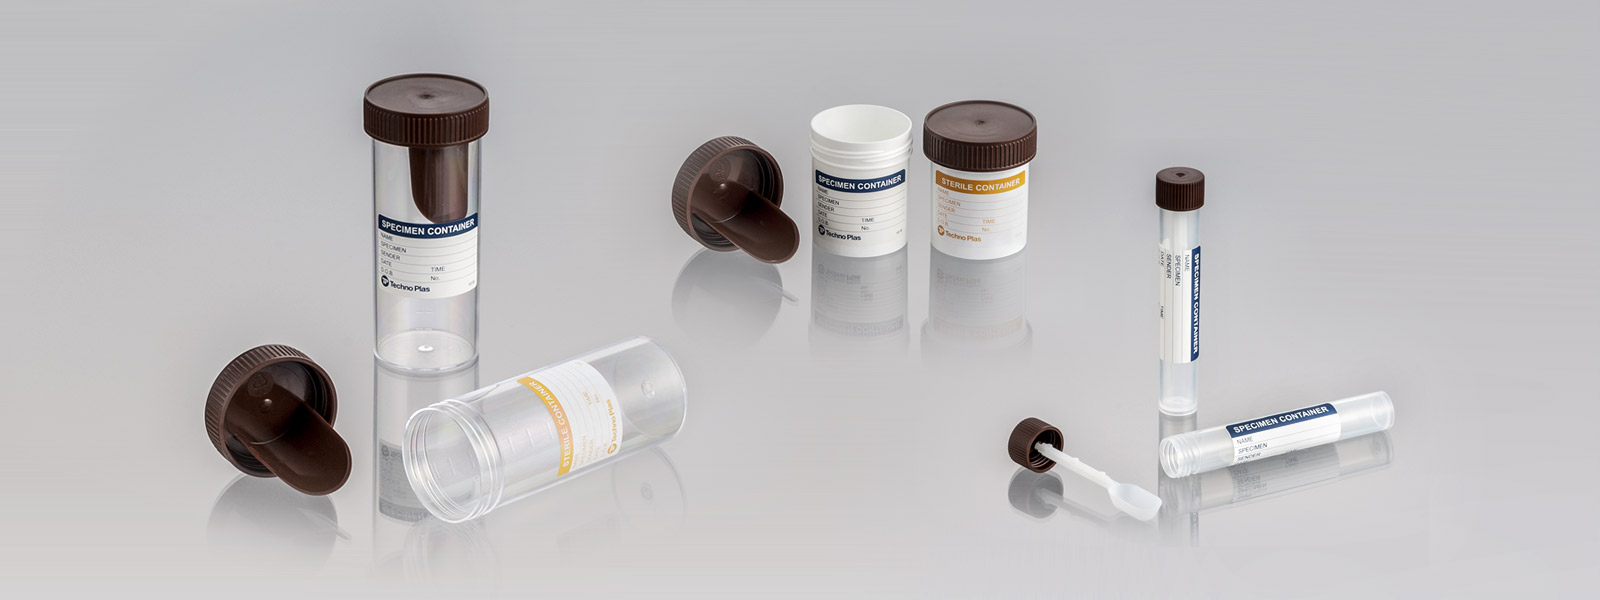 laboratory science product photography